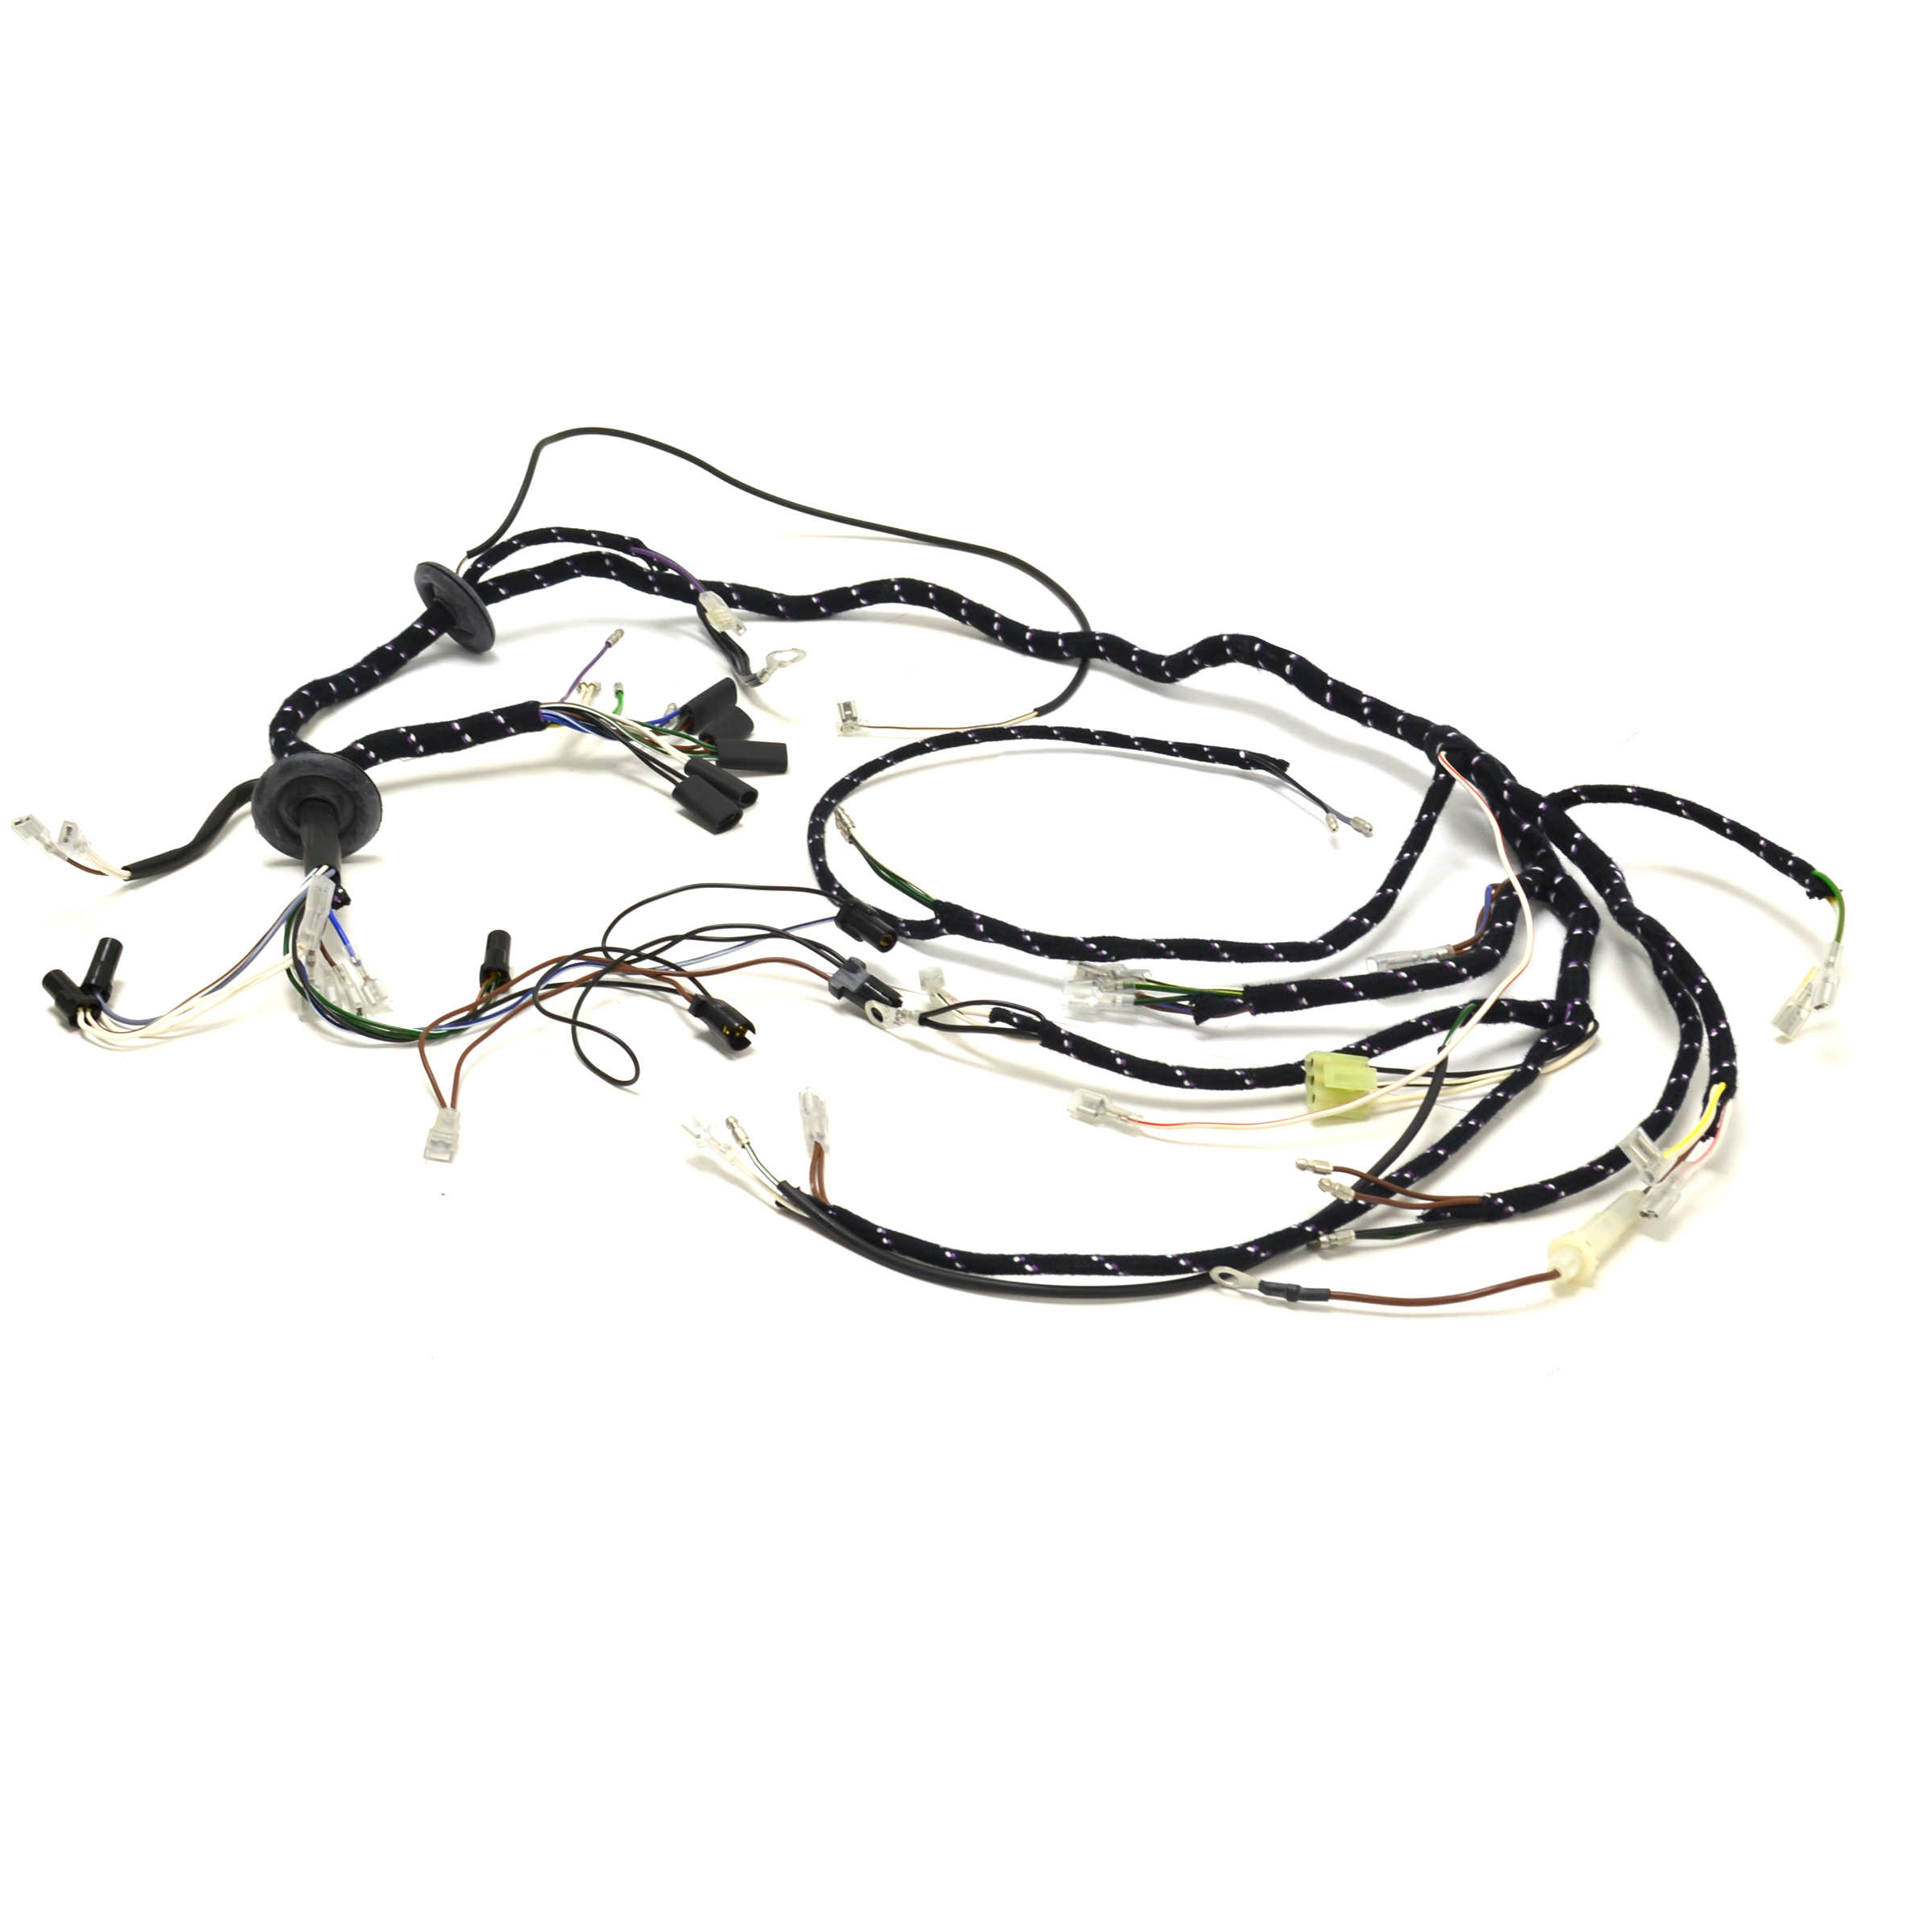 Triumph 80 T140e T140es English Made Wiring Harness